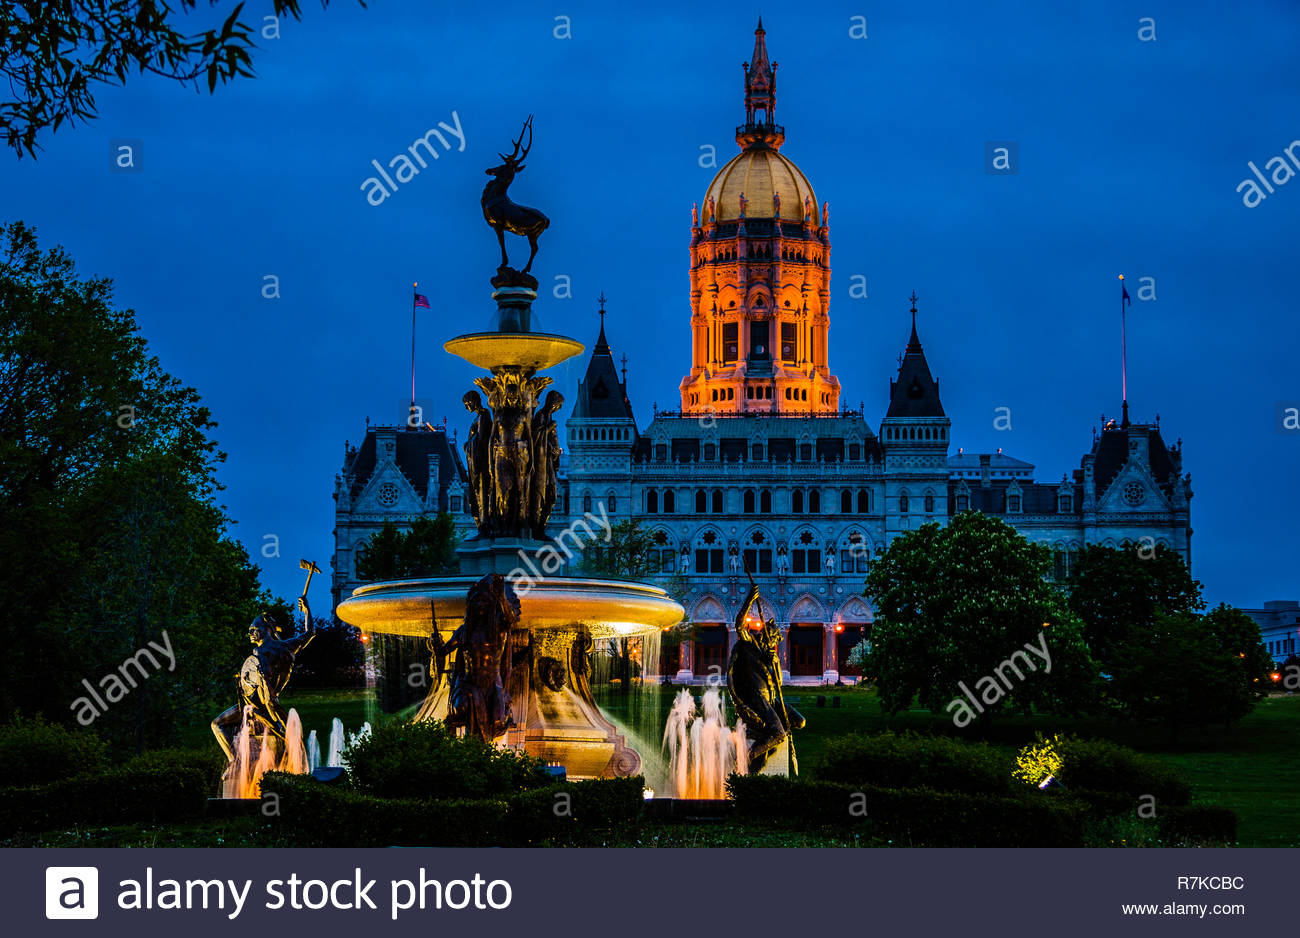 Corning Fountain Connecticut State Capitol _ Hartford, Connecticut, USA - Stock Image